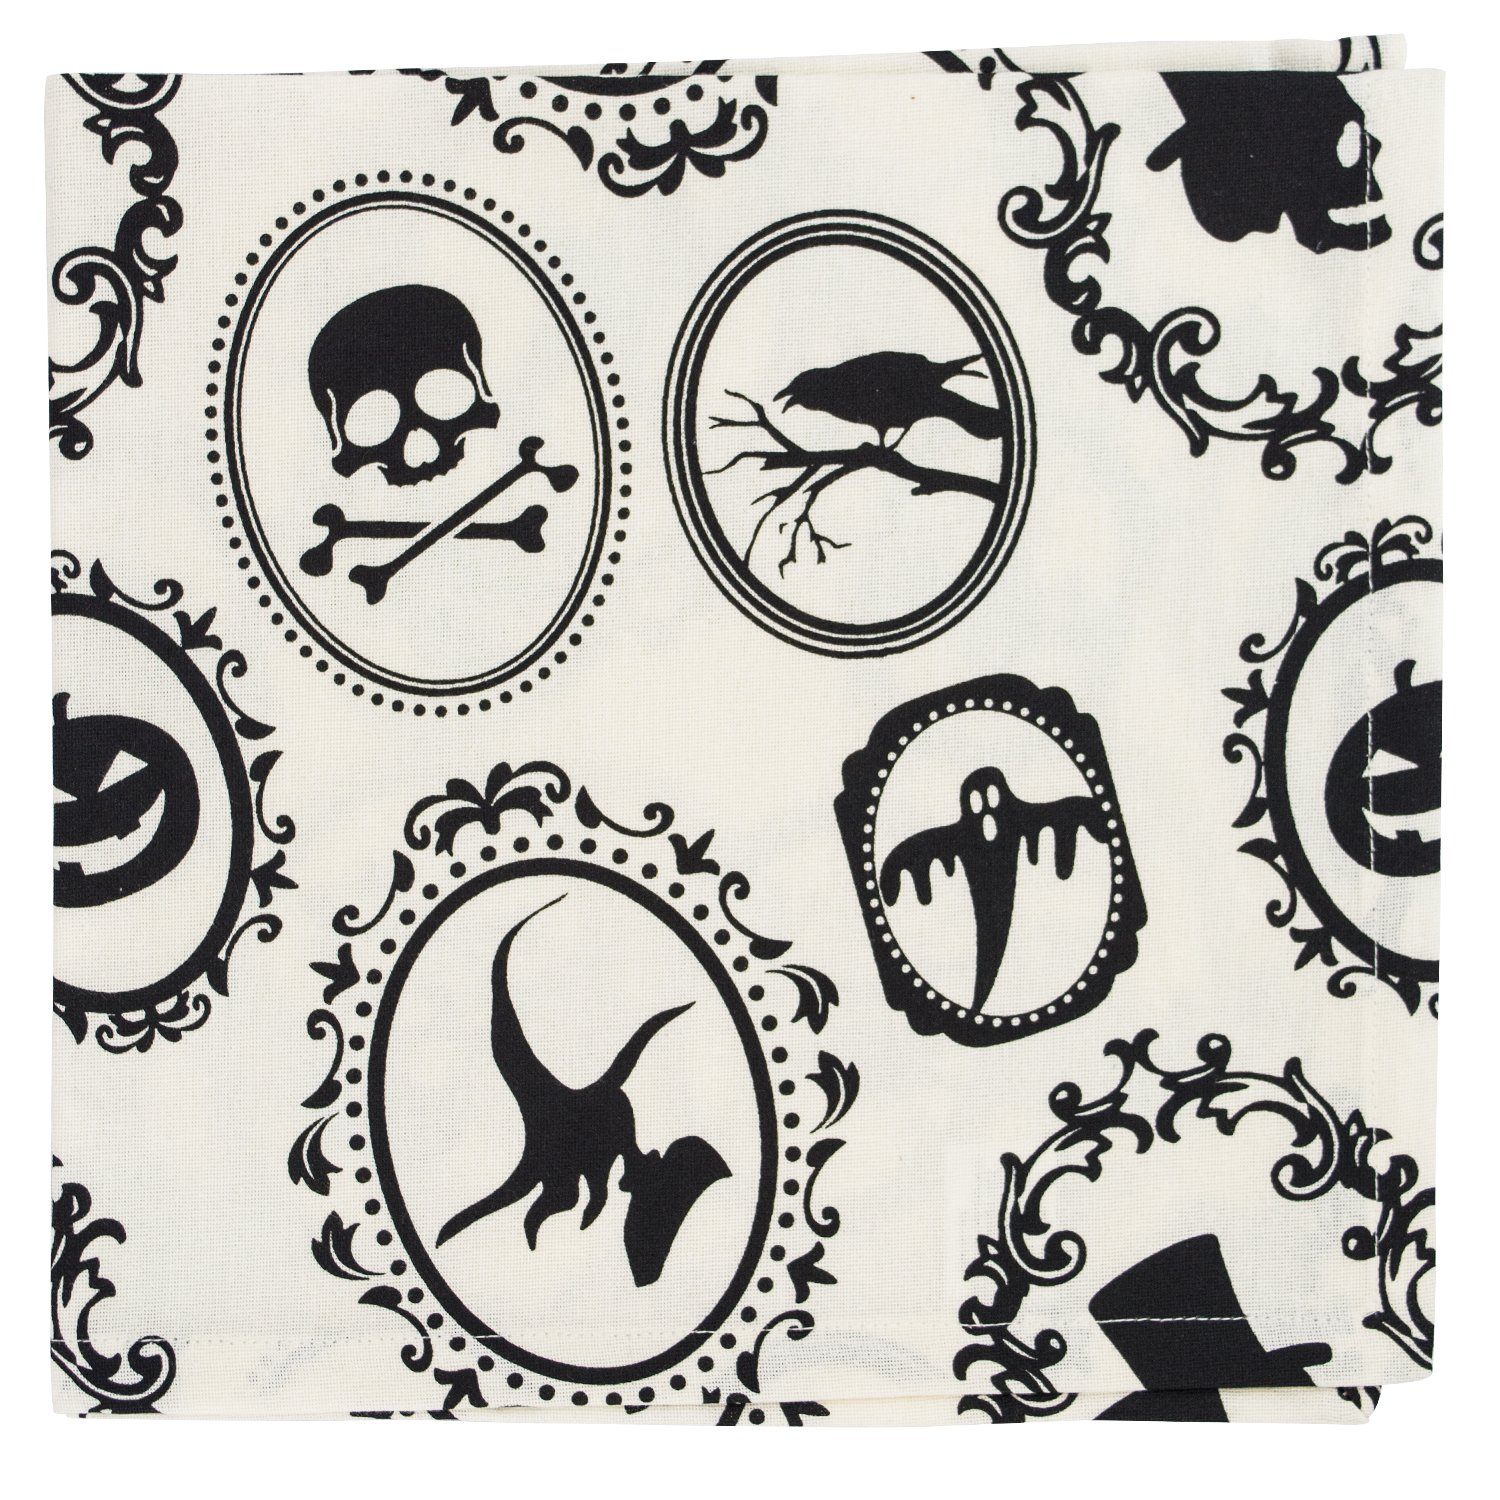 DII Oversized 20x20'' Cotton Napkin, Black & White Halloween Portrait - Perfect for Halloween, Dinner Parties and Scary Movie Nights by DII (Image #3)